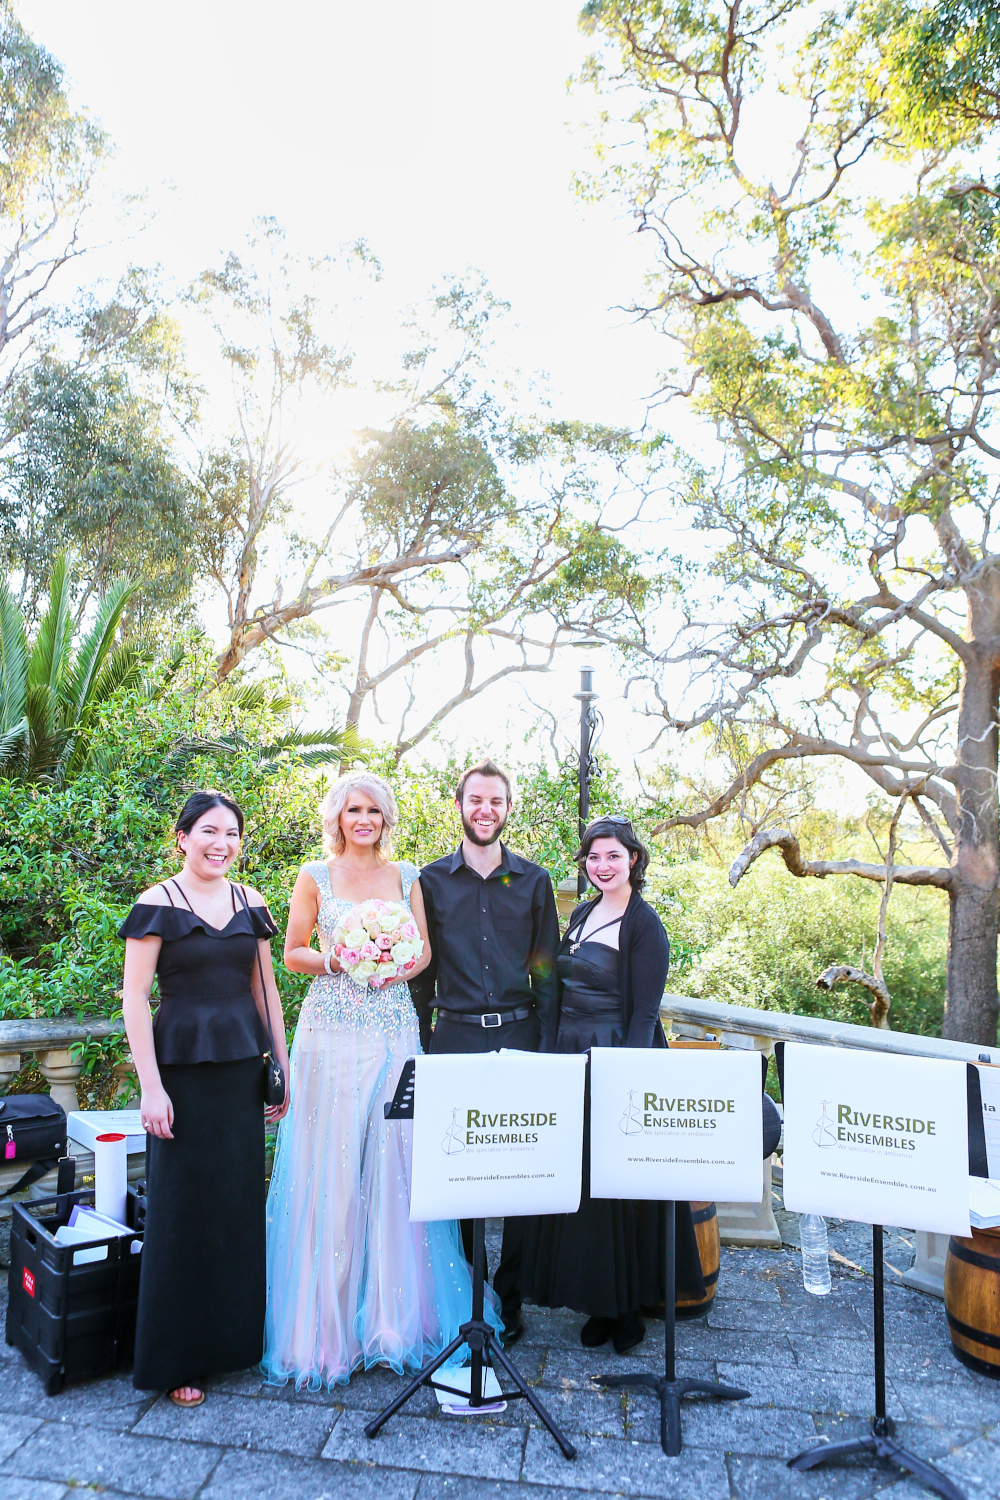 perth-function-string-music-hire-wedding-riverside-musiciansperth-function-string-music-hire-wedding-riverside-musicians-trio-bride-marriage